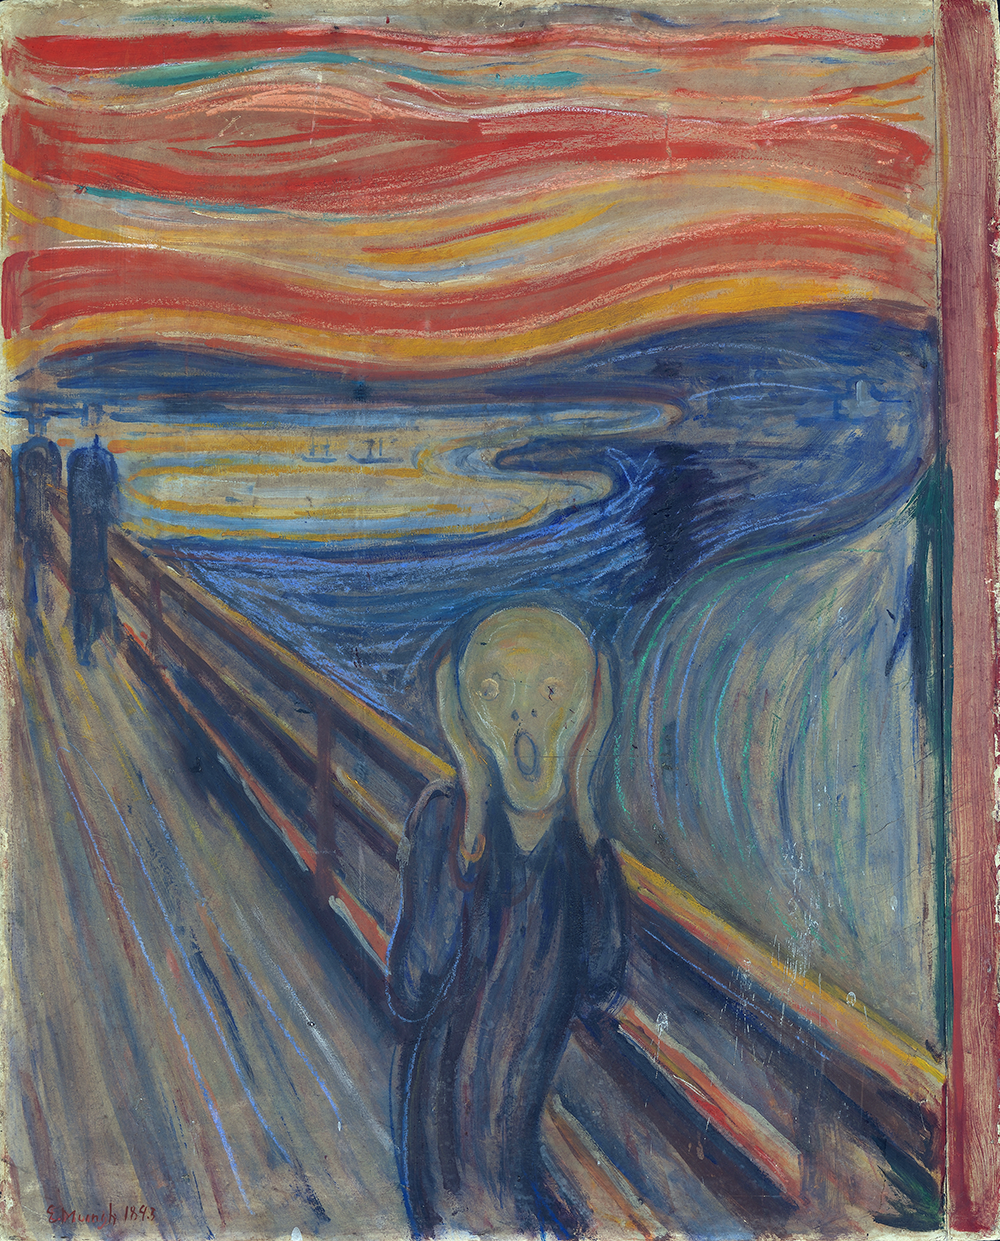 Edvard Munch 1893 The Scream